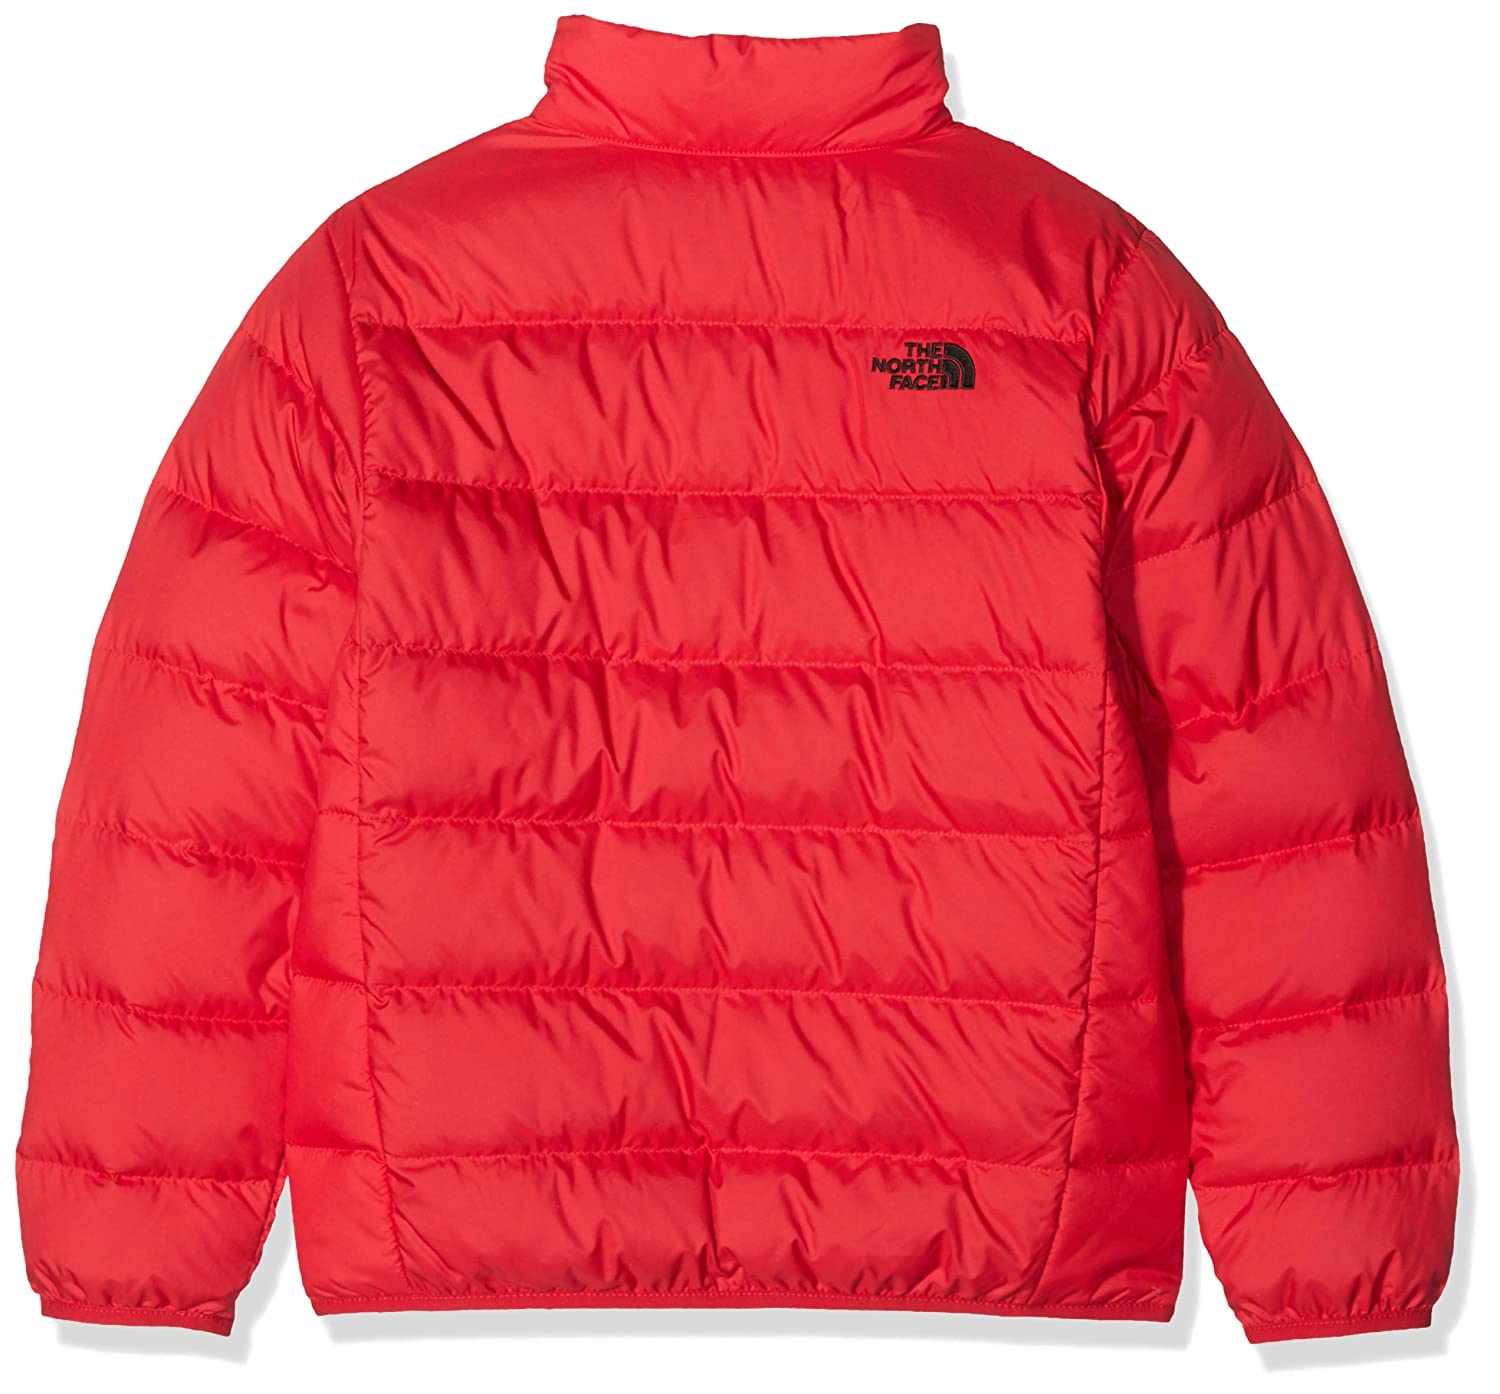 The North Face Big Boys Andes Down Jacket Sizes 7-20